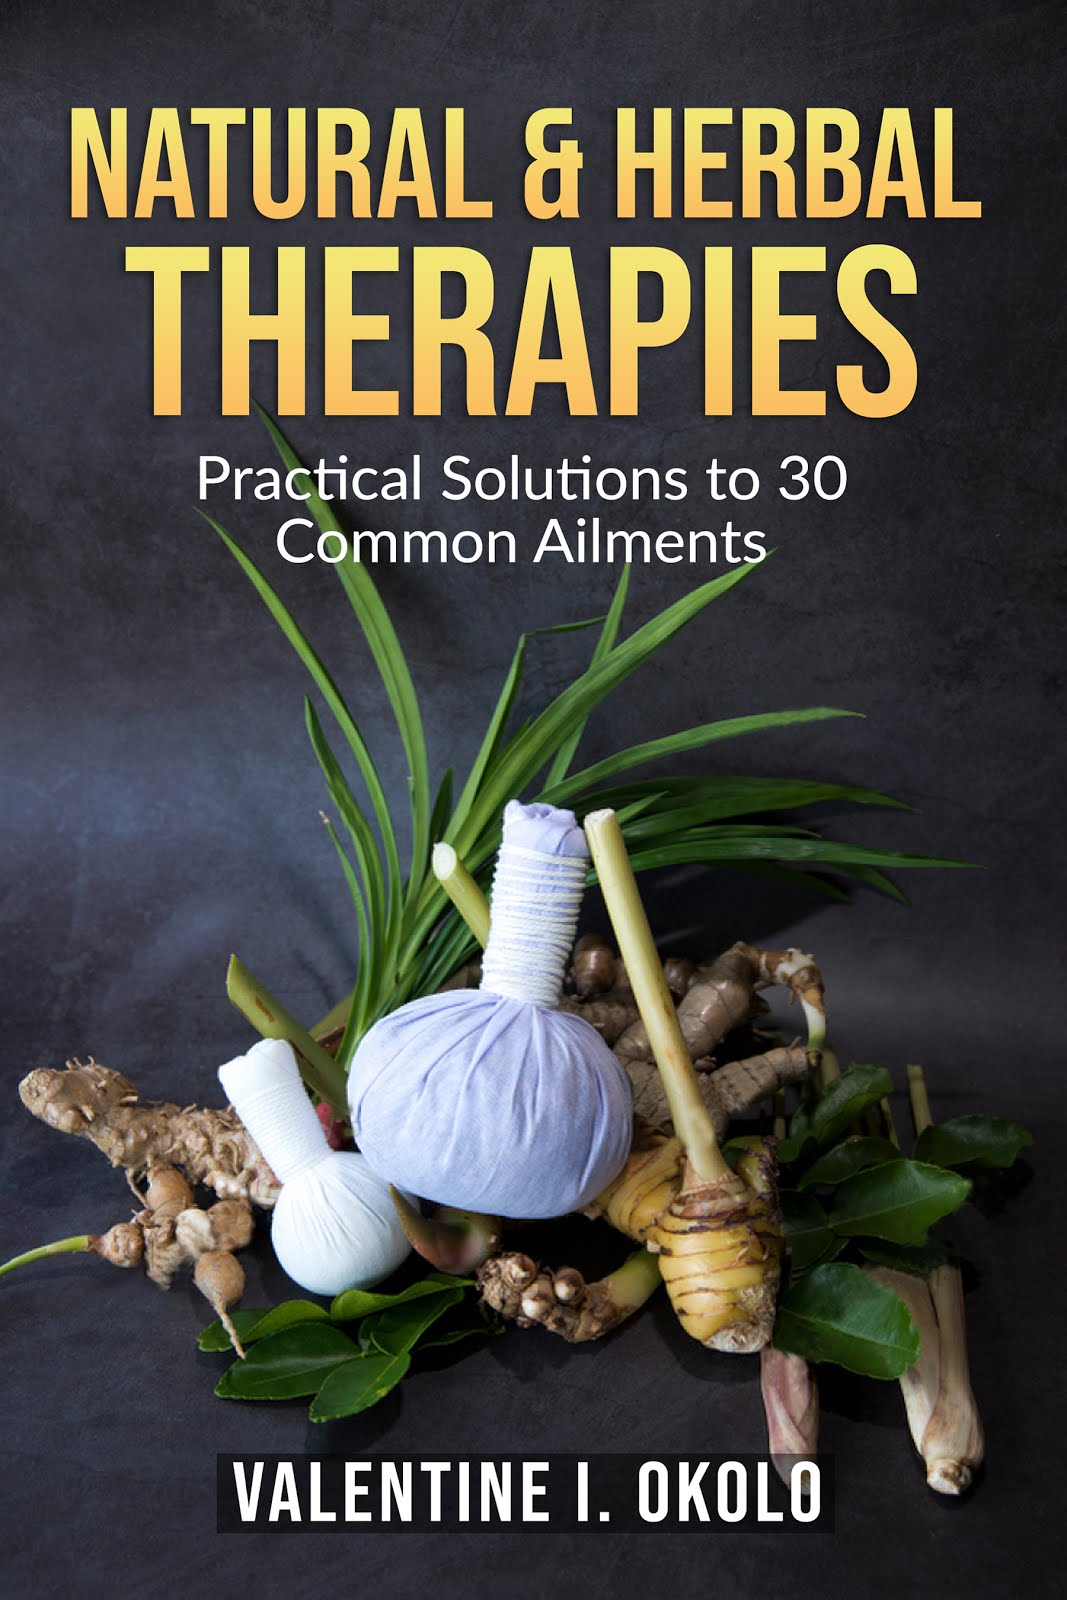 Natural & Herbal Therapies: Practical Solutions to 30 Common Ailments by Valentine Okolo